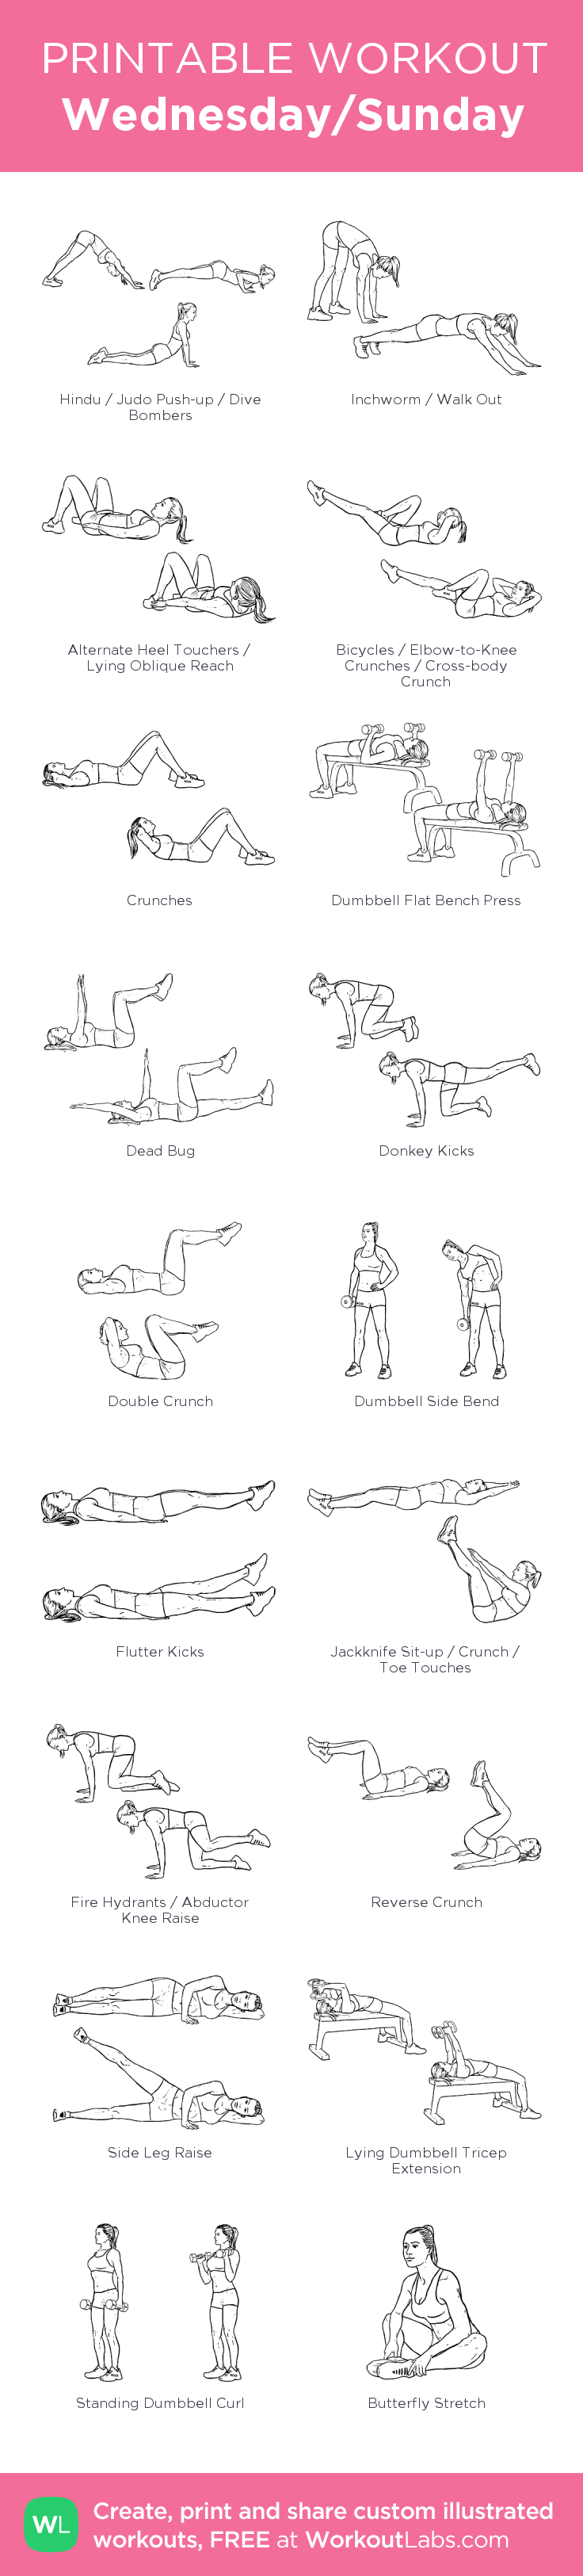 Wednesday/Sunday: my visual workout created at WorkoutLabs.com • Click through to customize and download as a FREE PDF! #customworkout